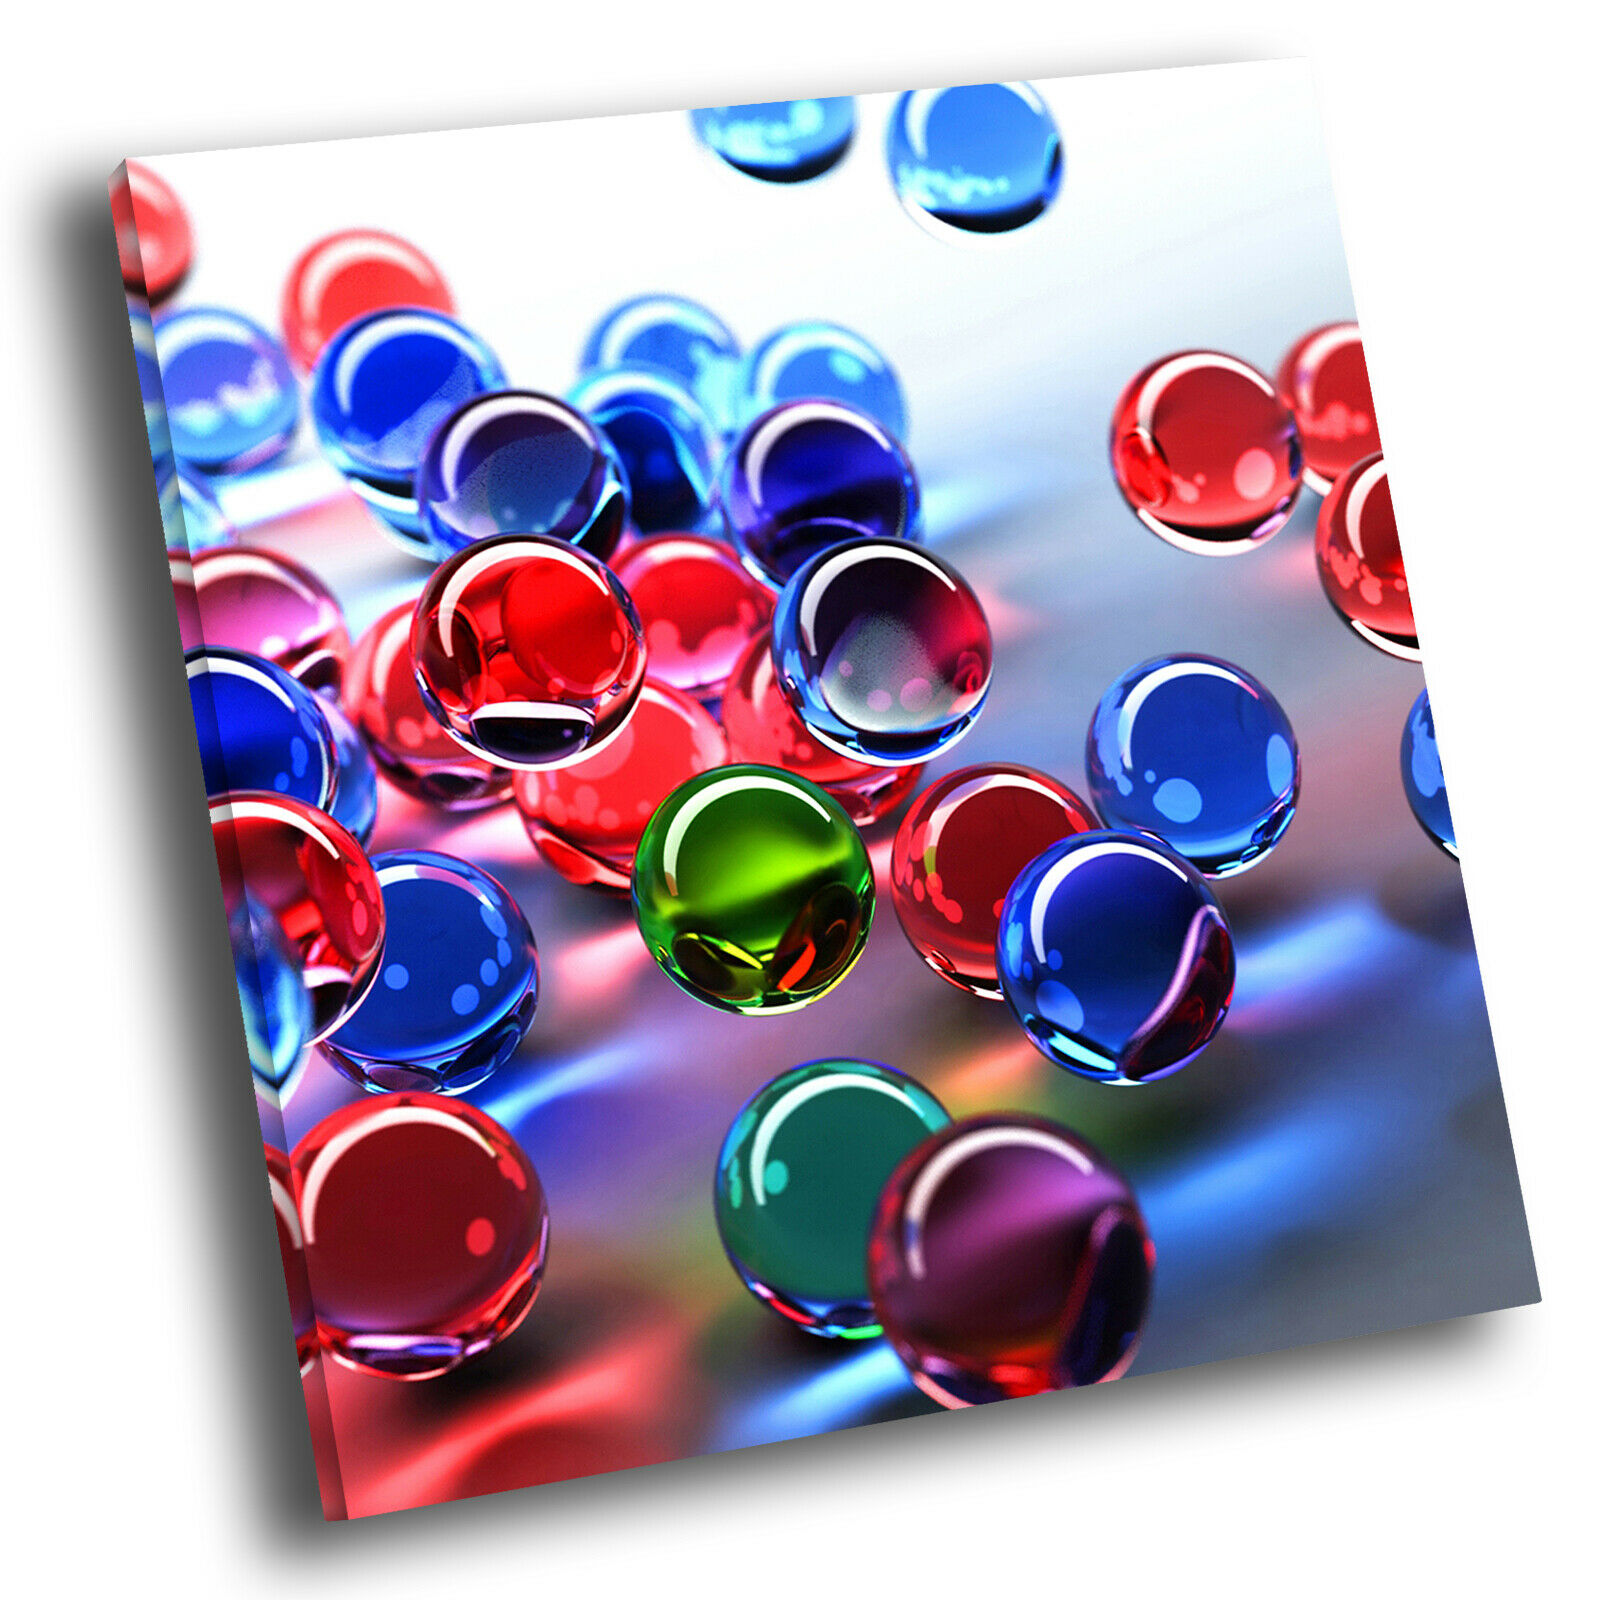 Blau rot 3D Marbles Square Abstract Photo Canvas Wall Art Large Picture Prints